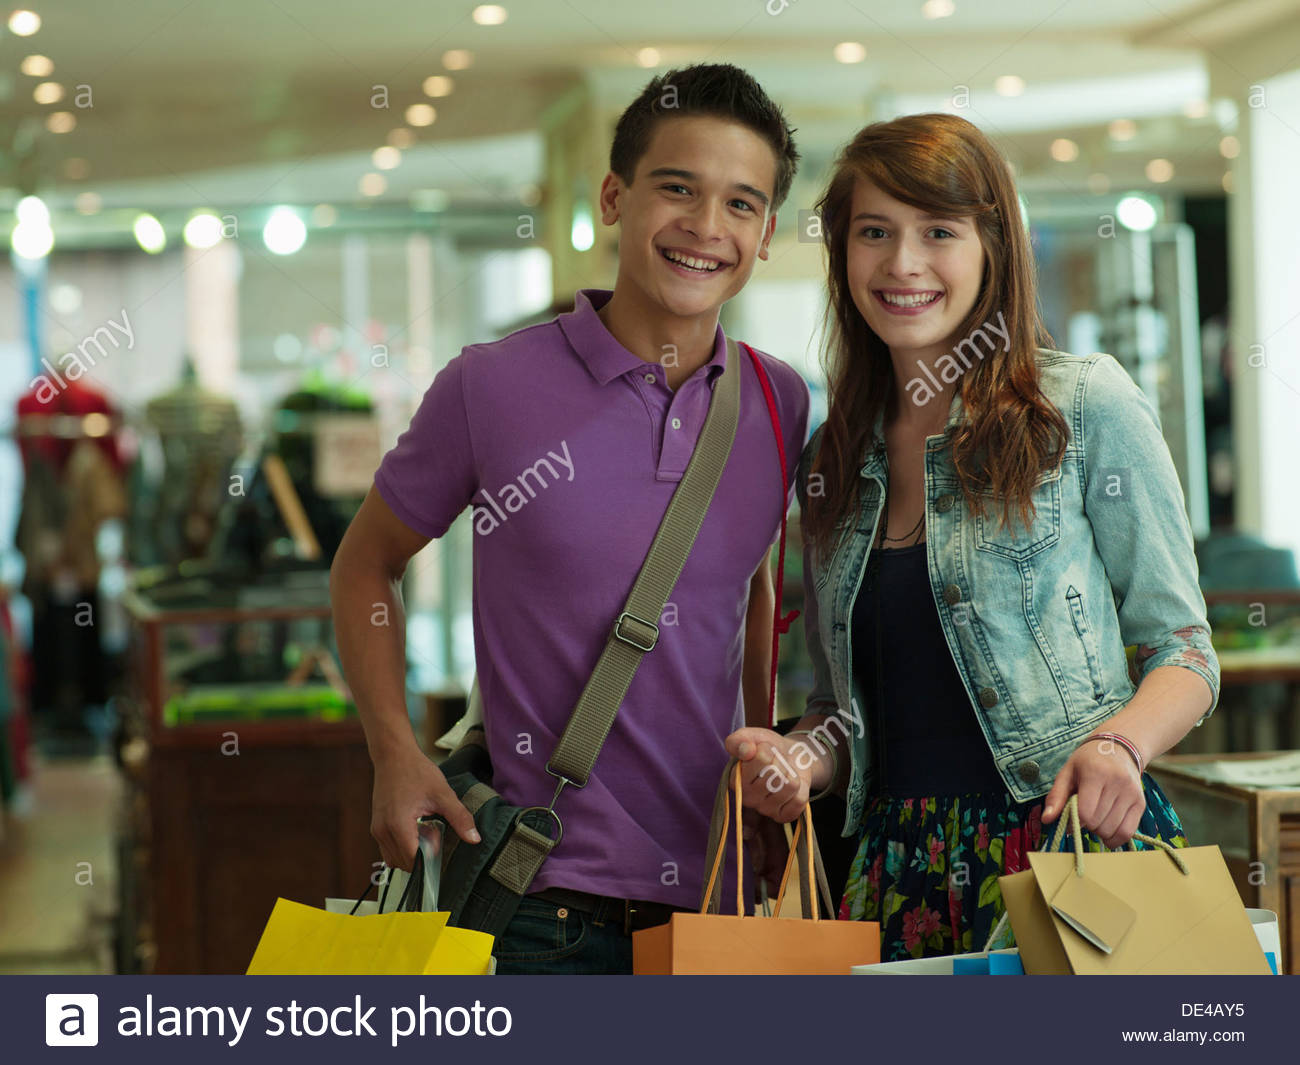 Smiling couple carrying shopping bags in store - Stock Image